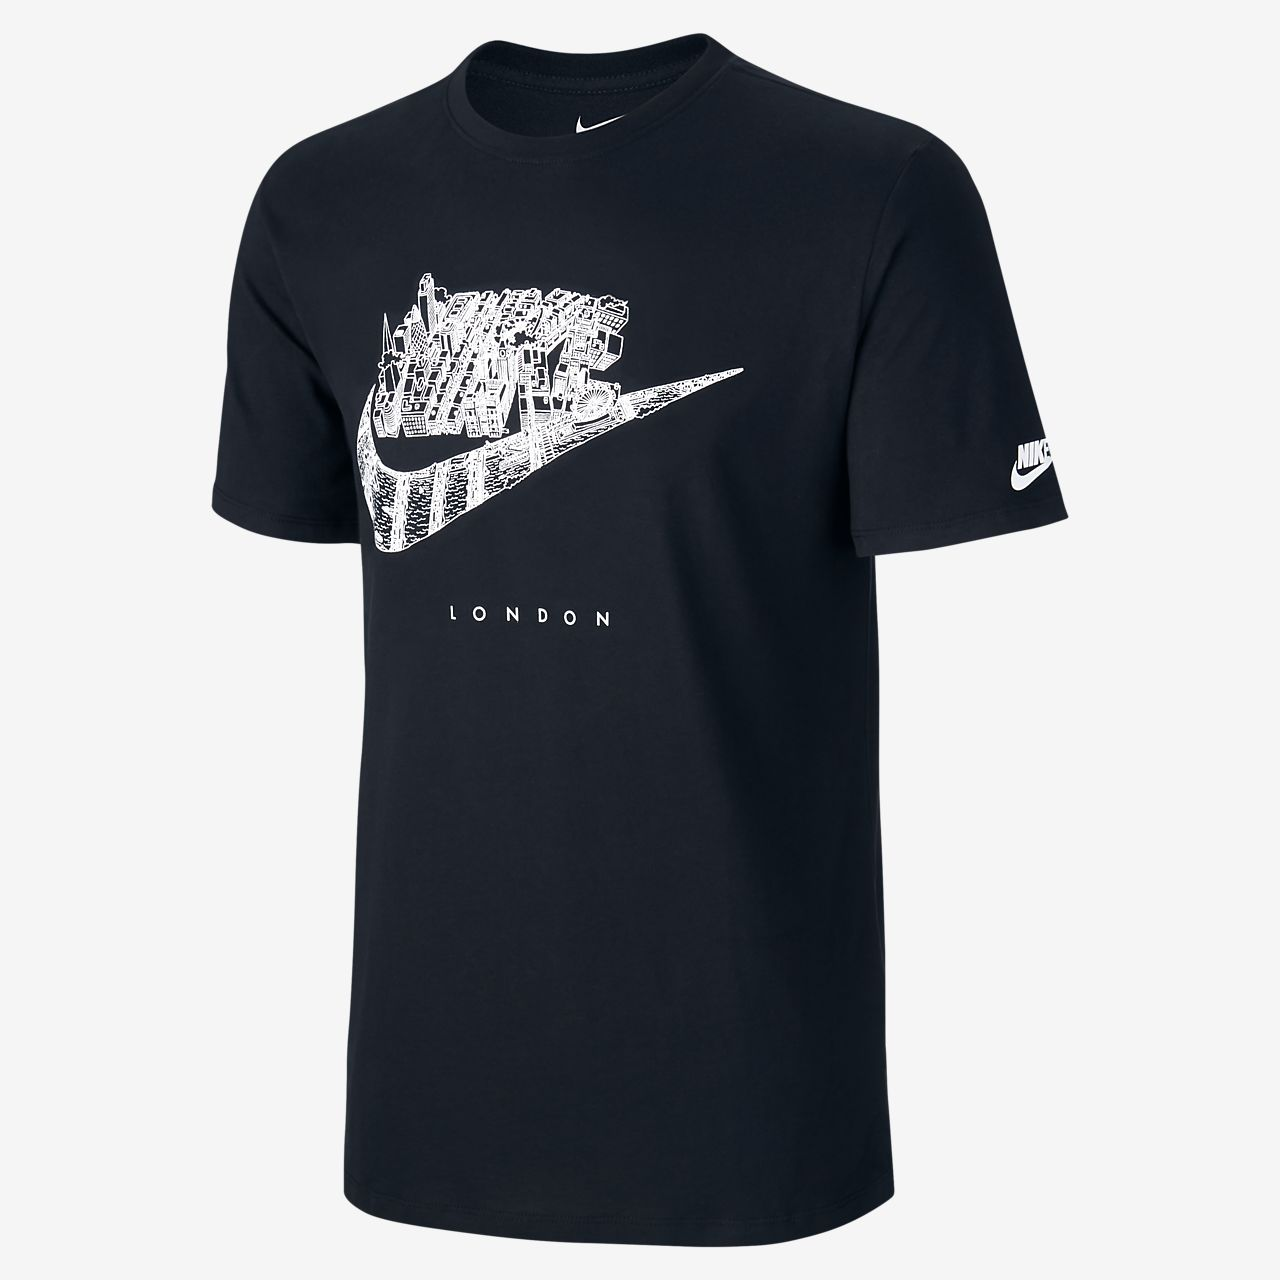 Nike t shirt image for Nike flyknit t shirt